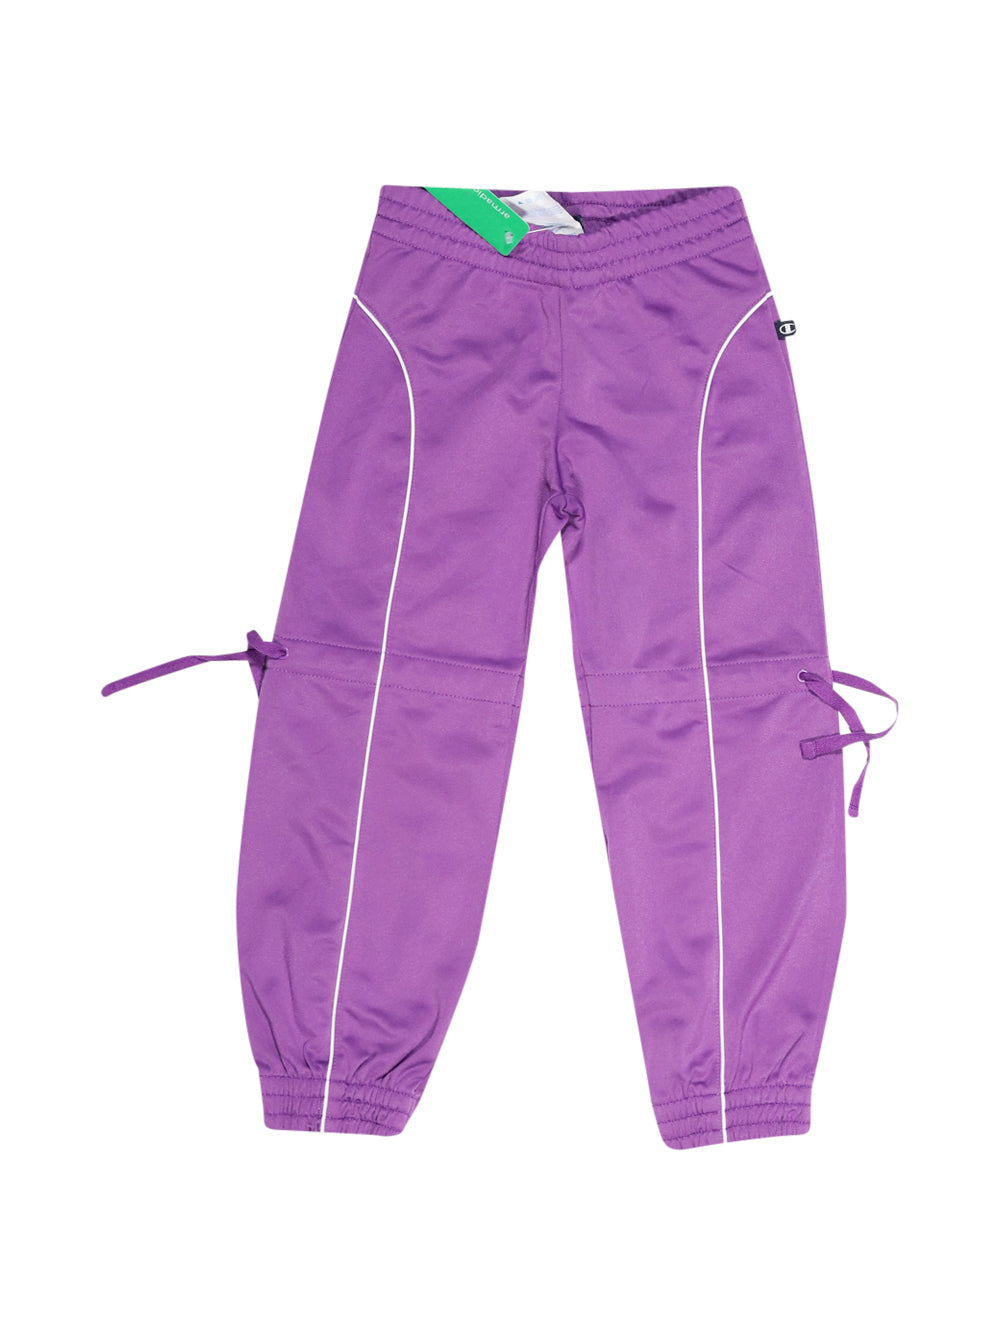 Front photo of Preloved Champion Violet Girl's trousers - size 5-6 yrs